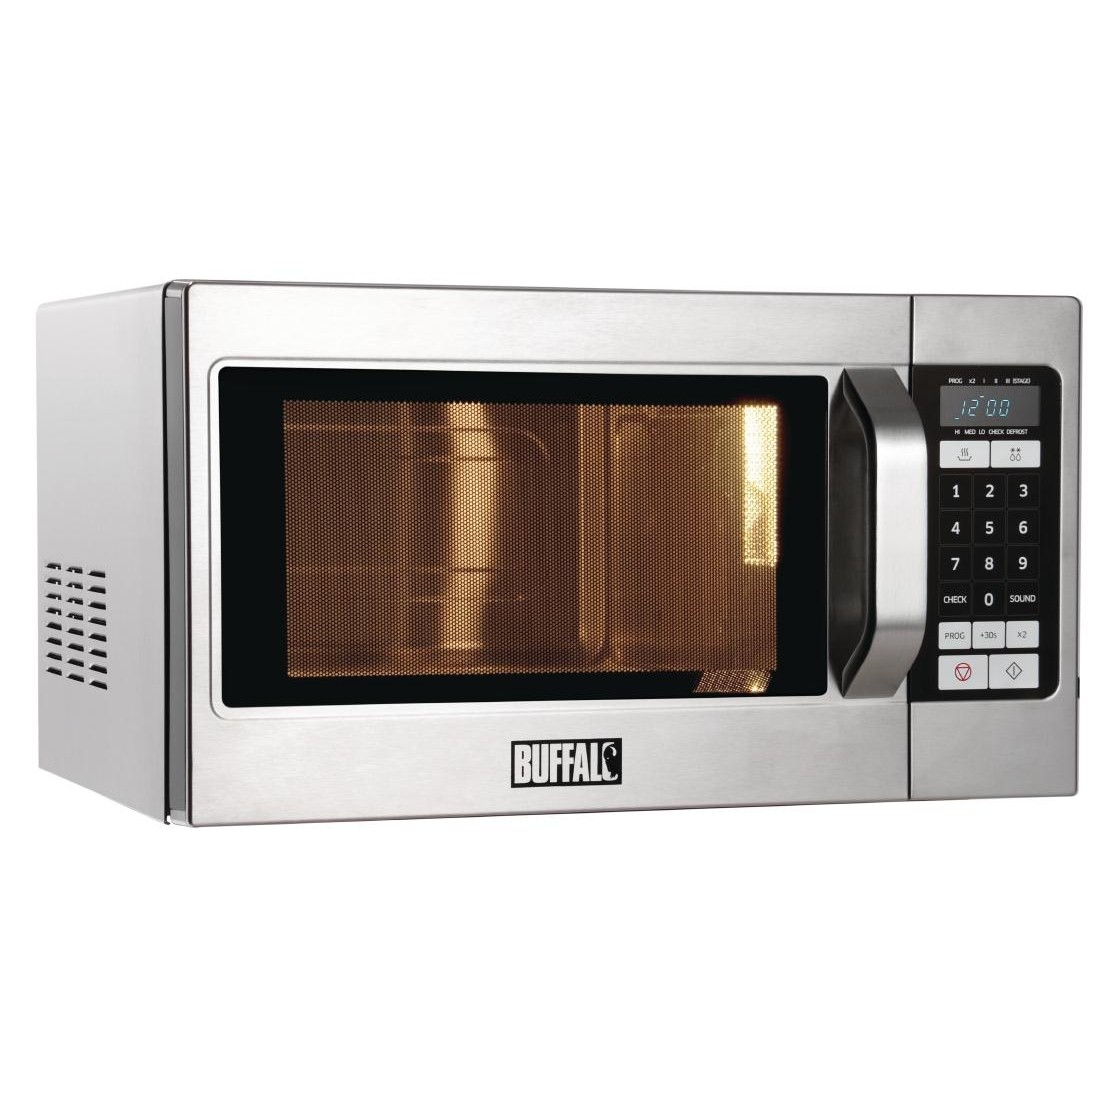 Buffalo GK642 Programmable 1100w Commercial Microwave Oven